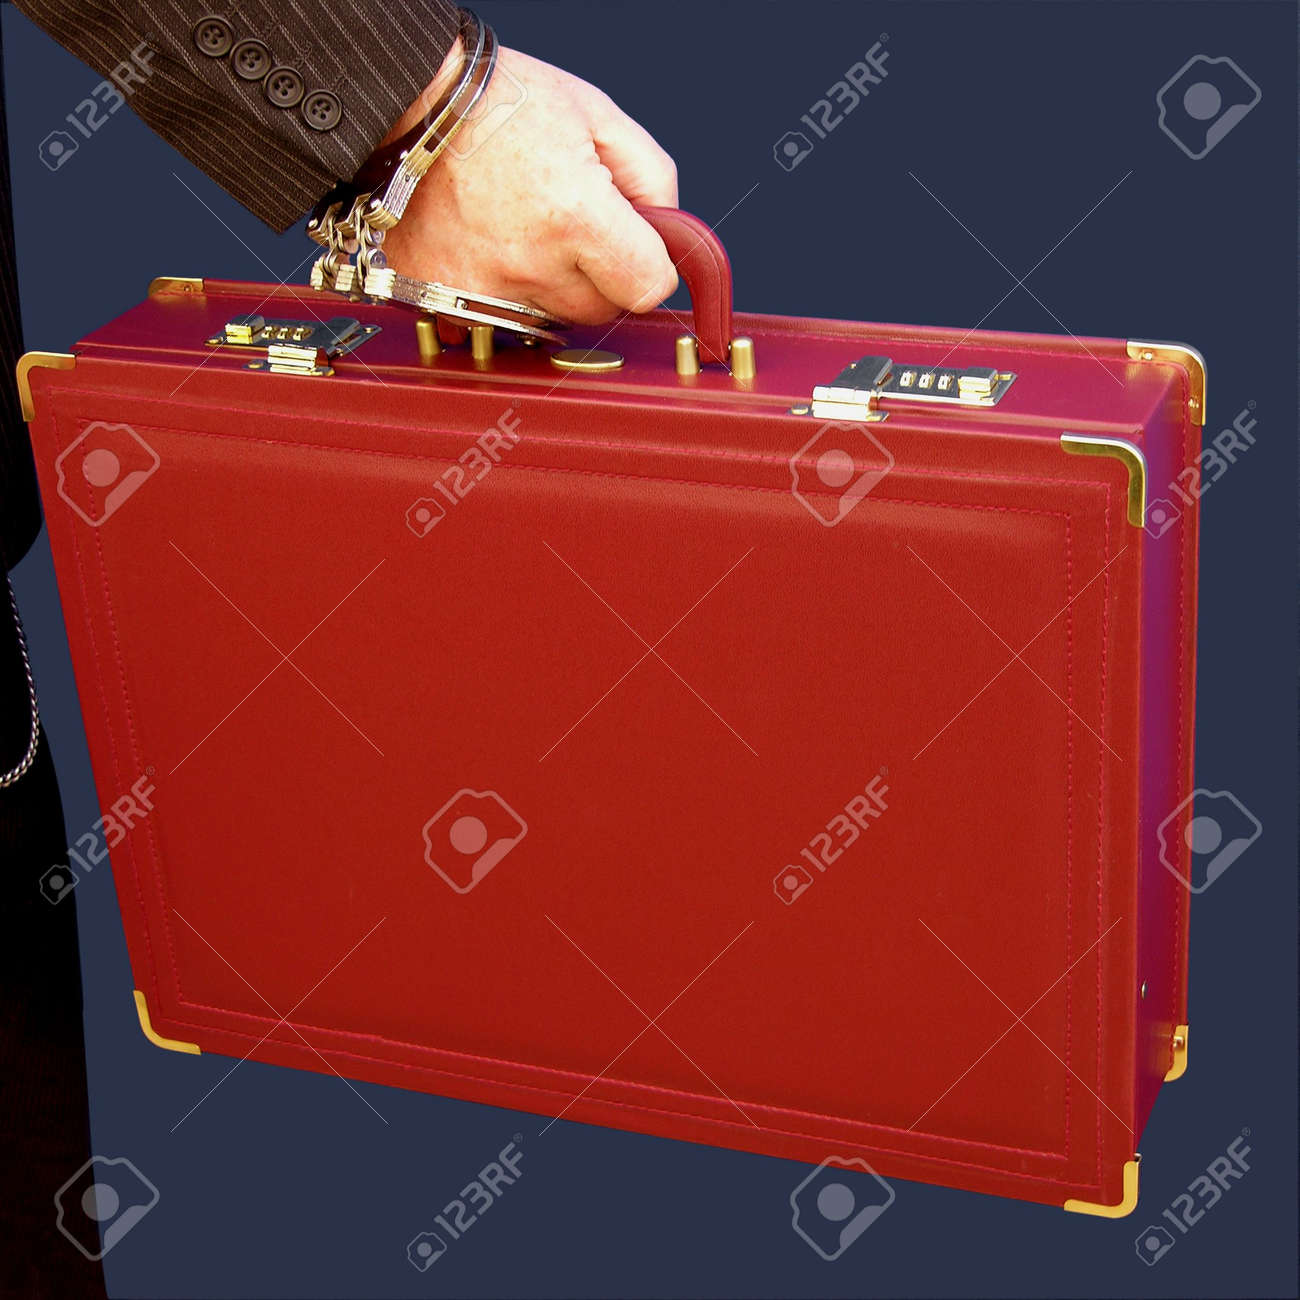 Someone handcuffed to a briefcase for security Stock Photo - 2146838